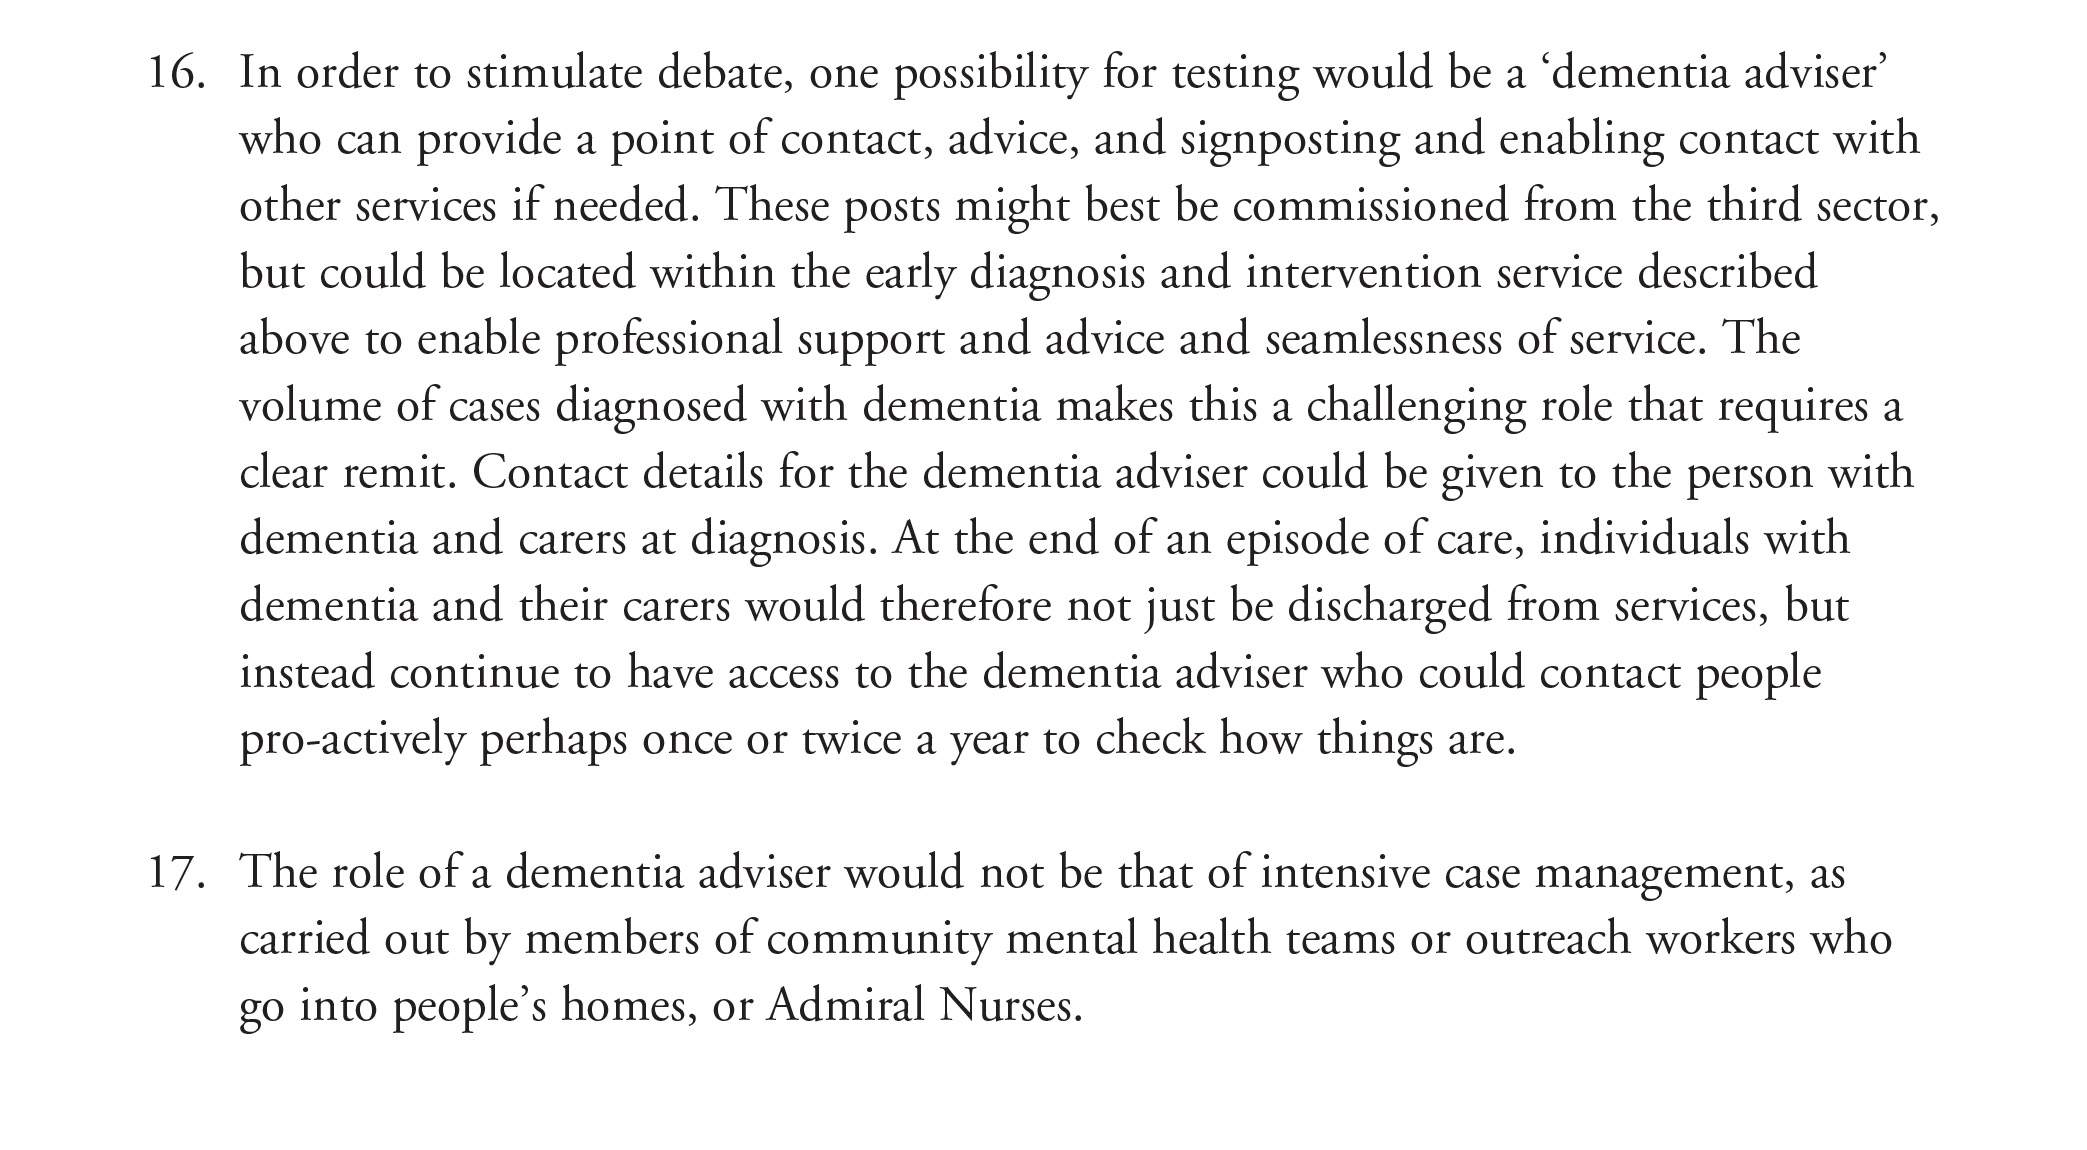 Specialist nurses should form part of the post-diagnostic